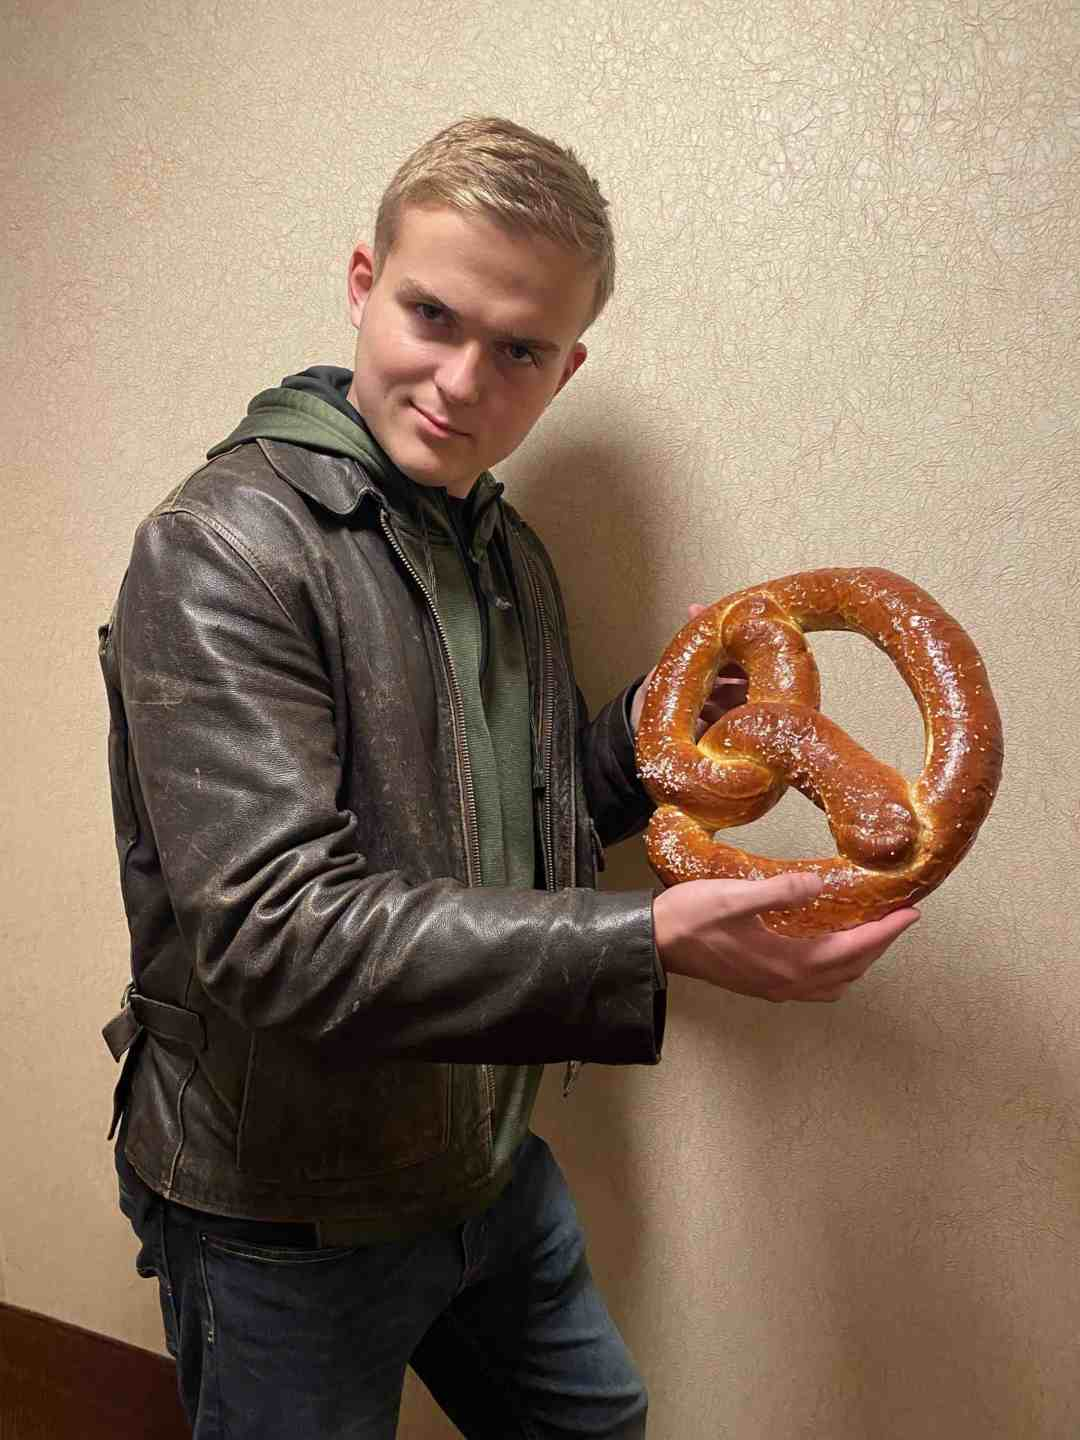 Giant pretzel larger than your head from Oma's Restaurant in Frankenmuth